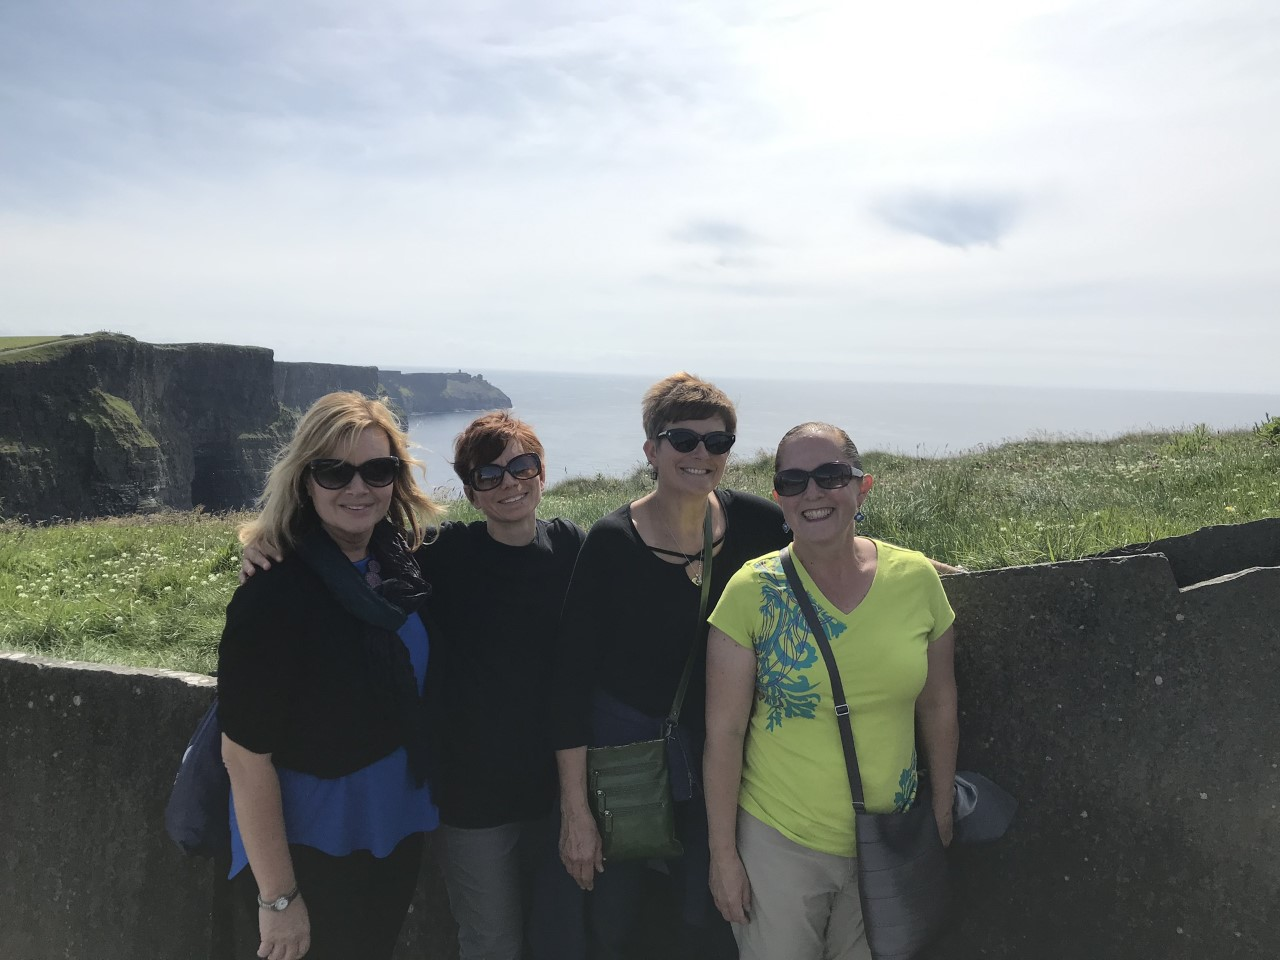 There was also time to tour the country, and the group took a trip to the famous Cliffs of Moher.